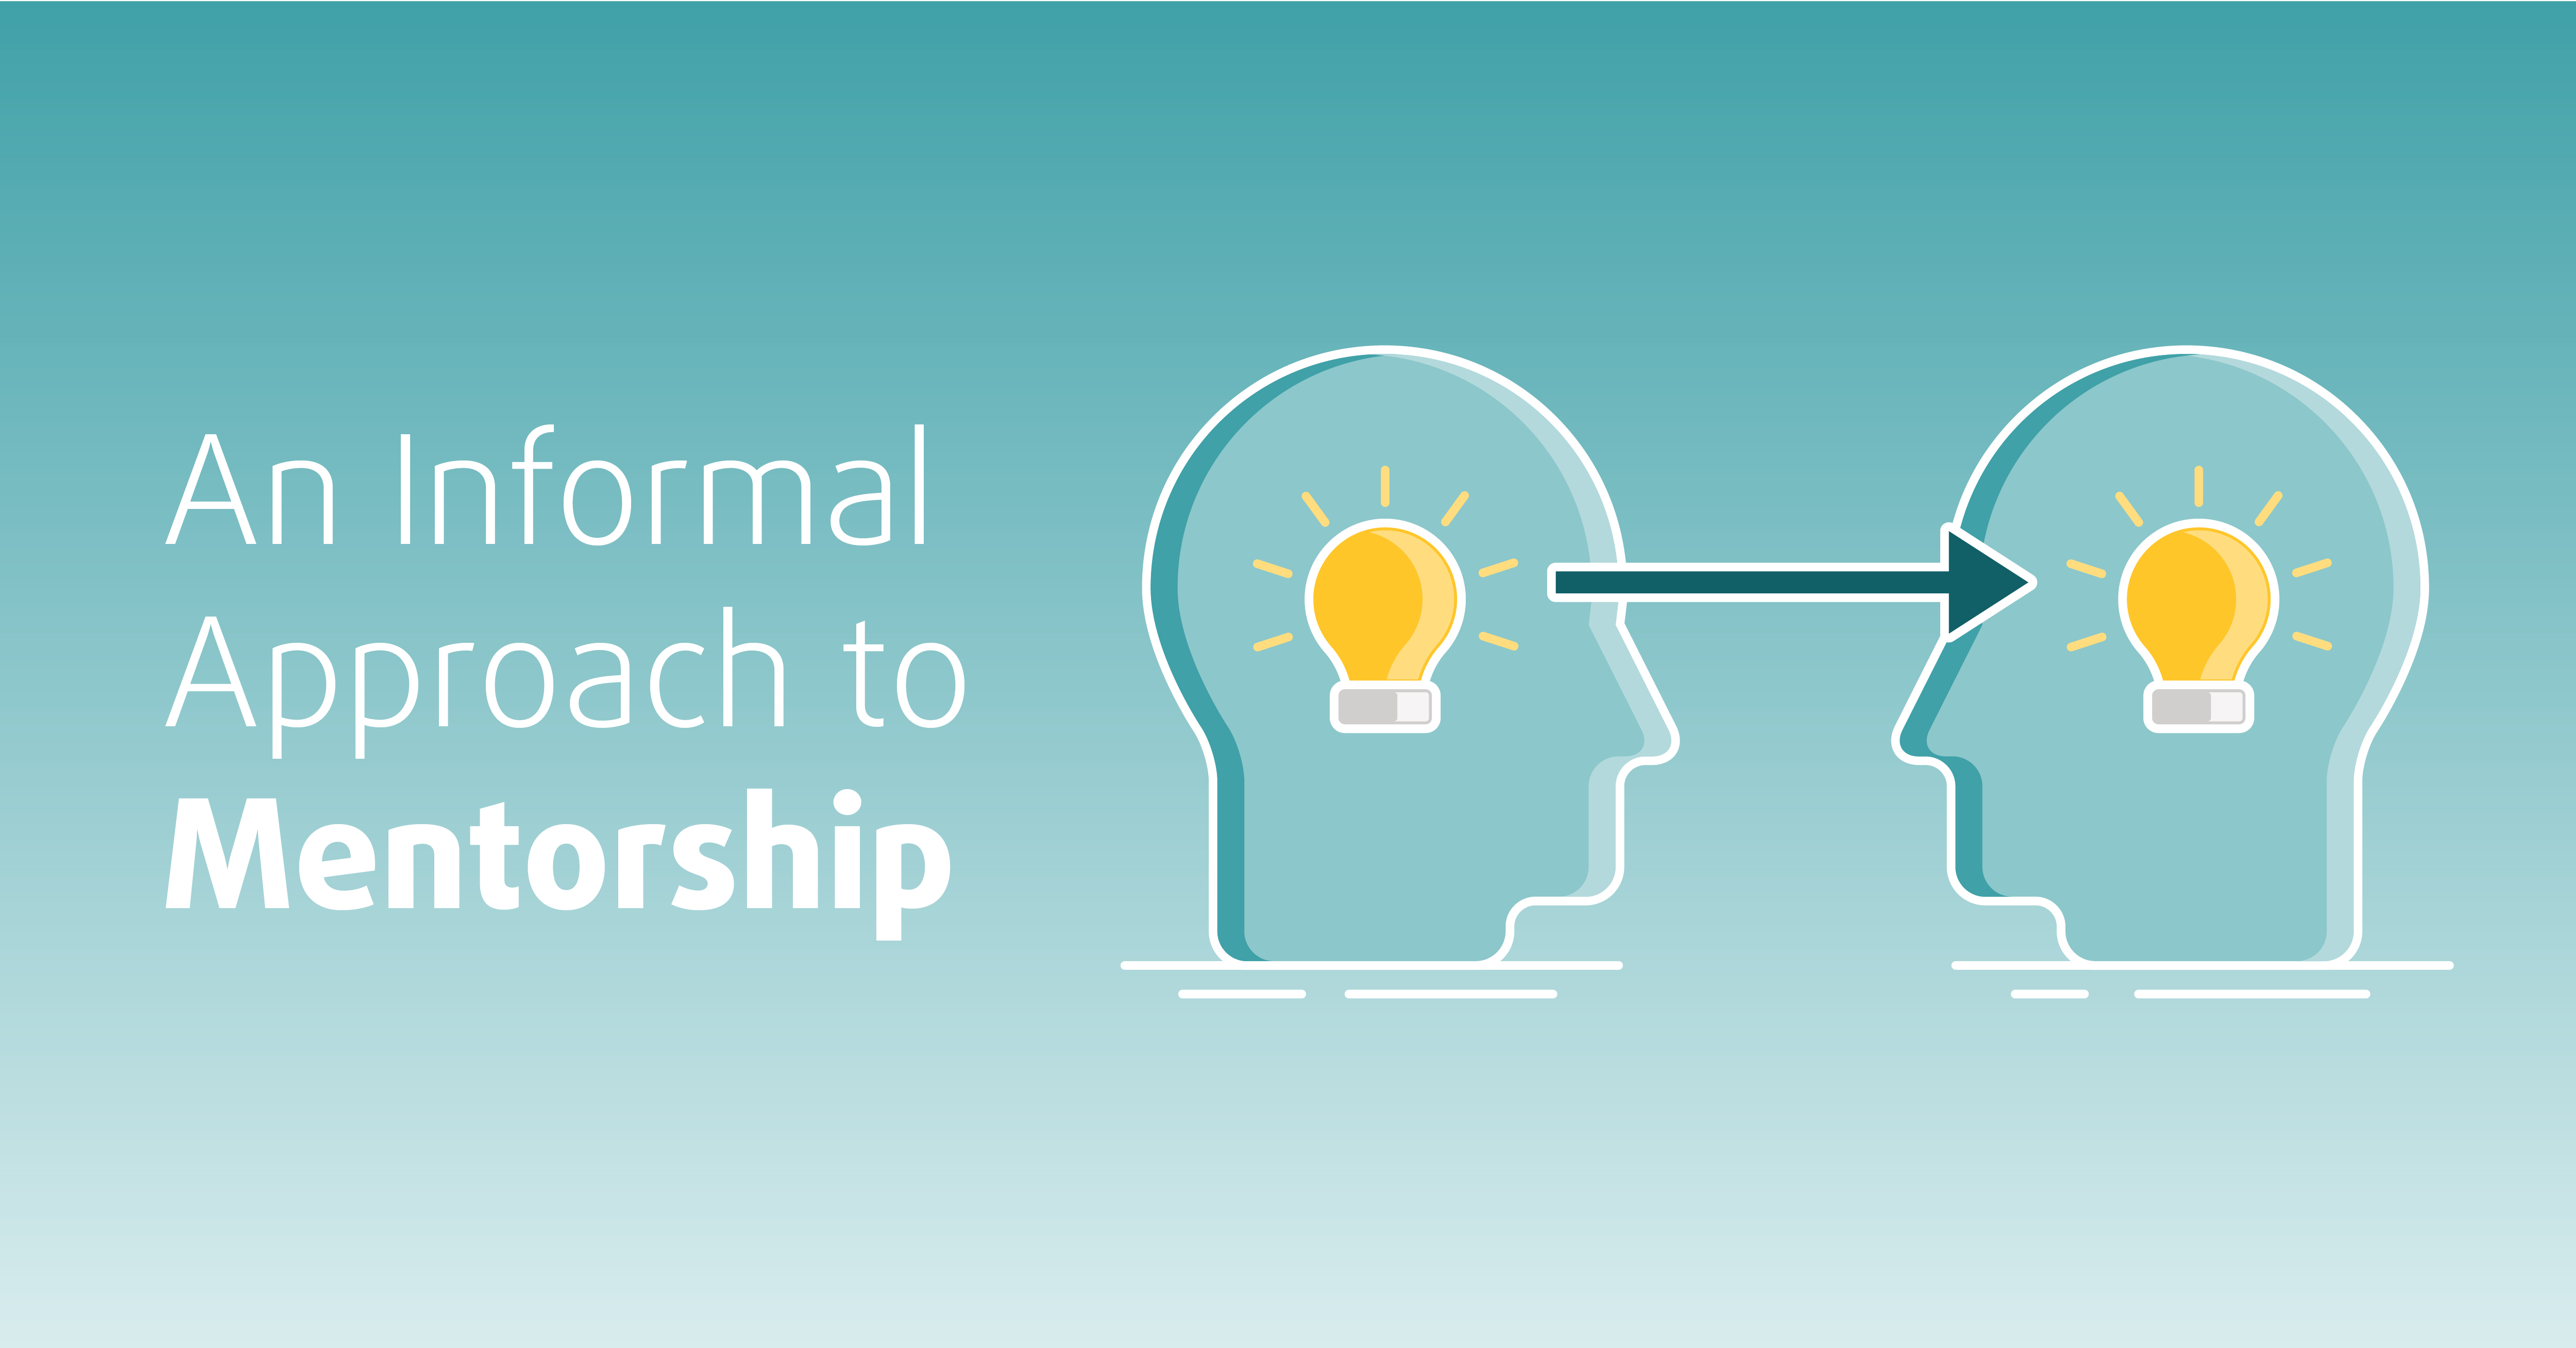 An Informal Approach to Mentorship Animated Graphic